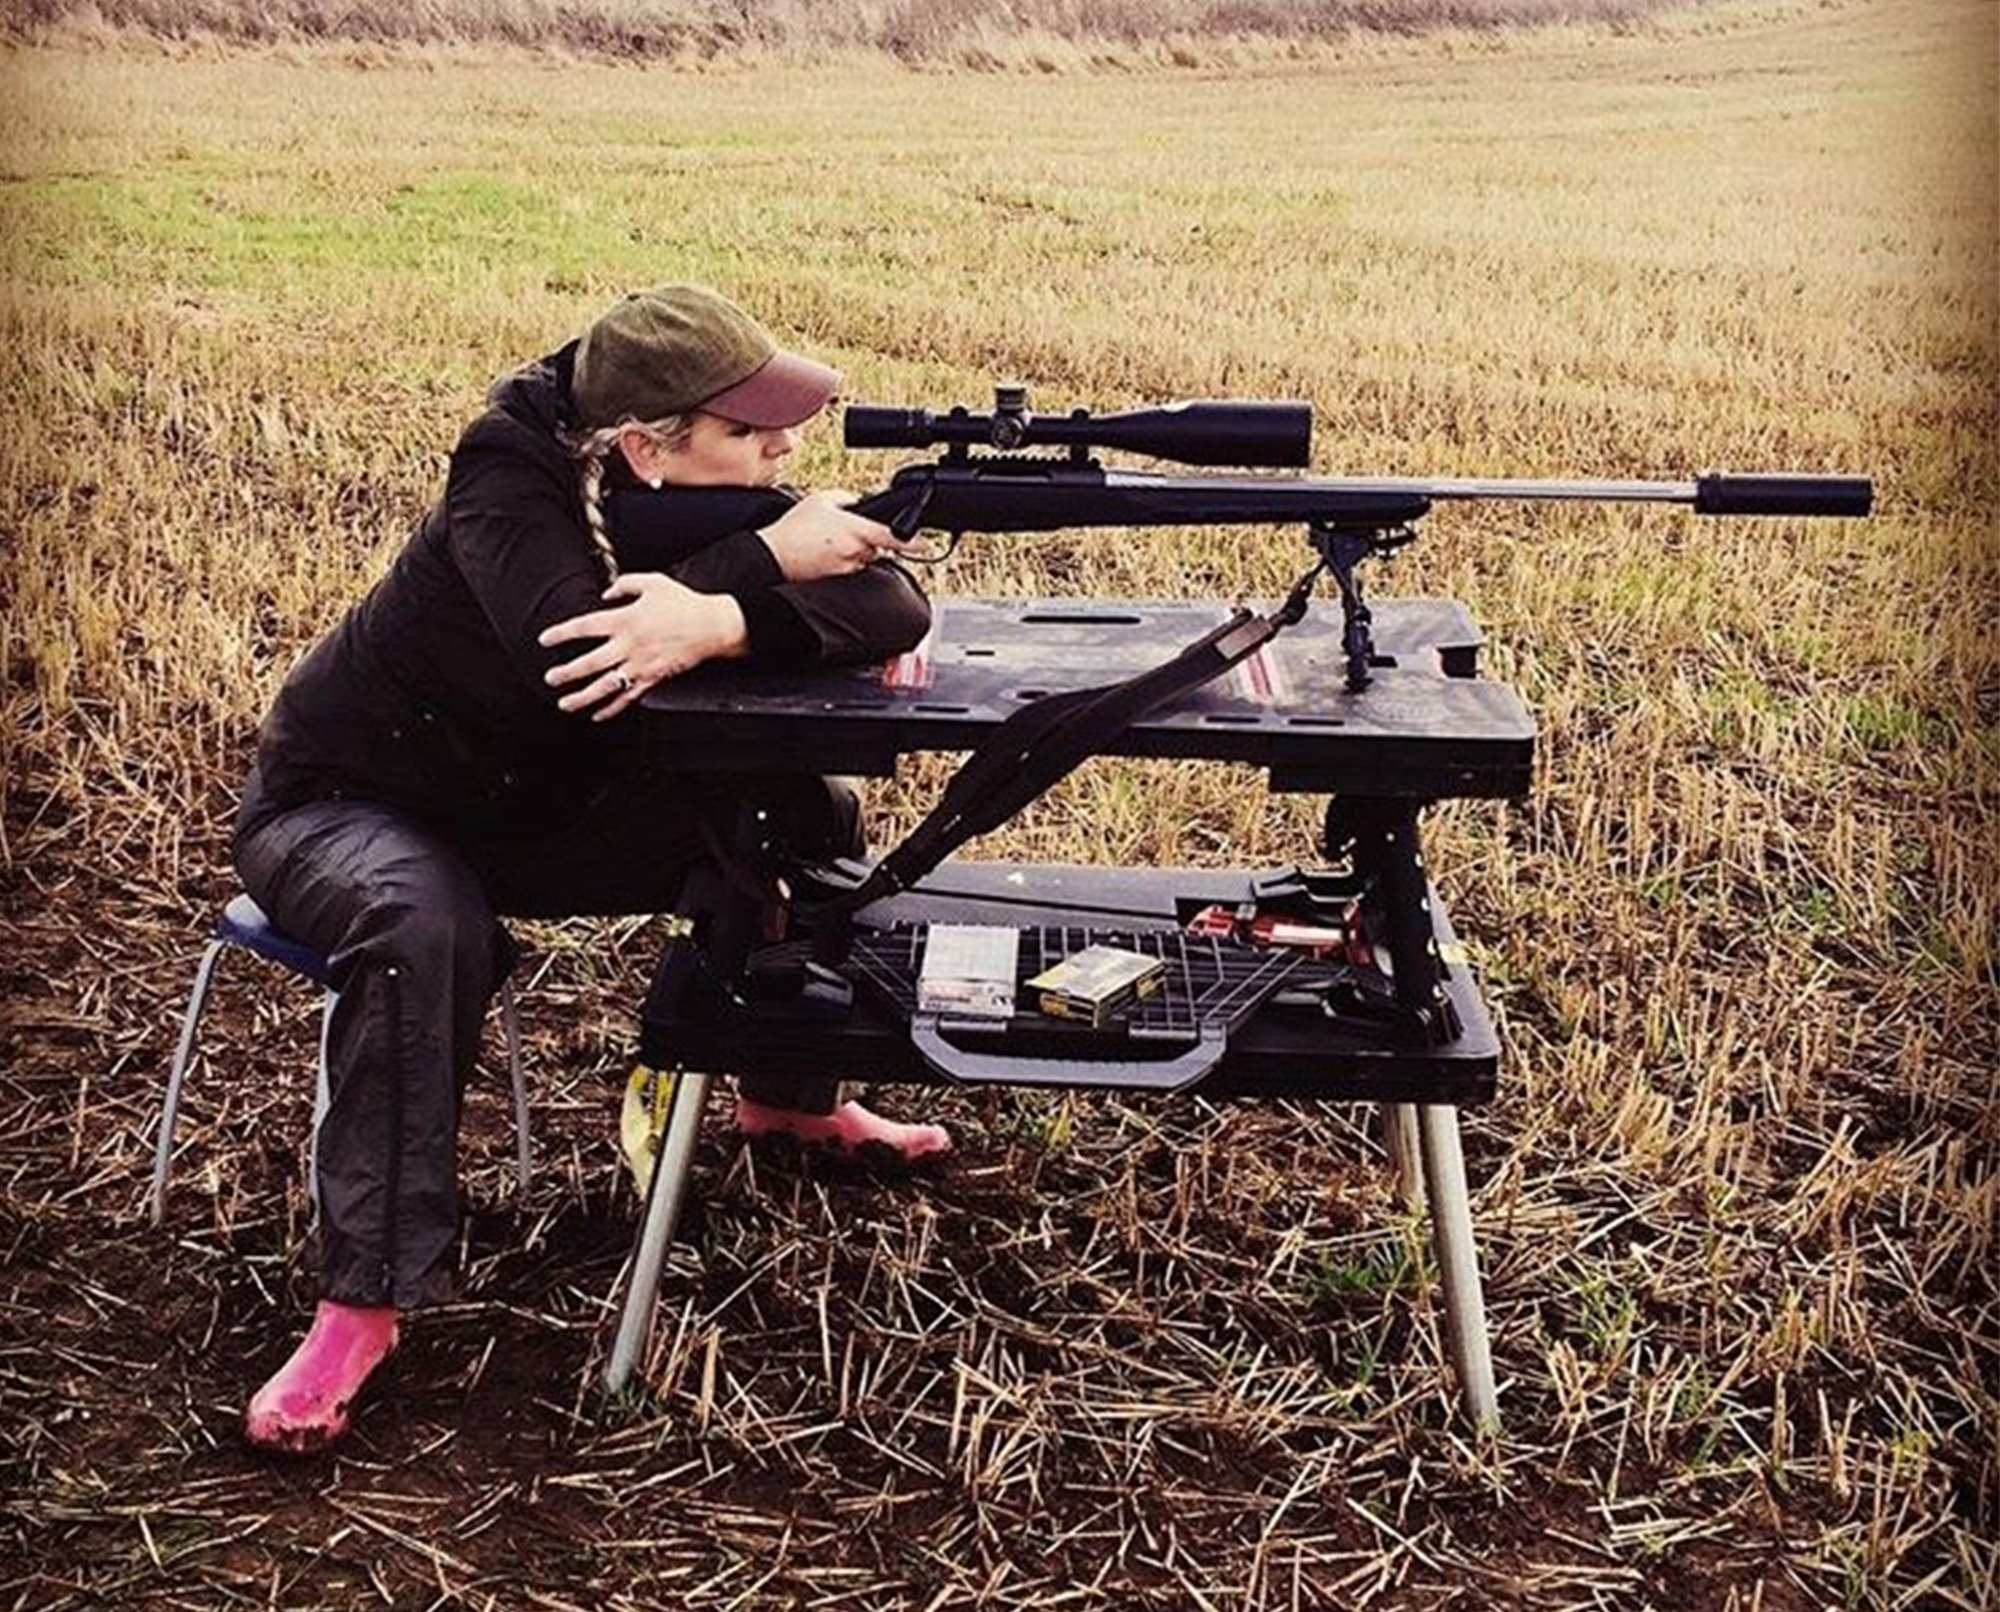 Mhairi-Ann Troup target shooting rifle 243 Mannlicher Pro Varmit